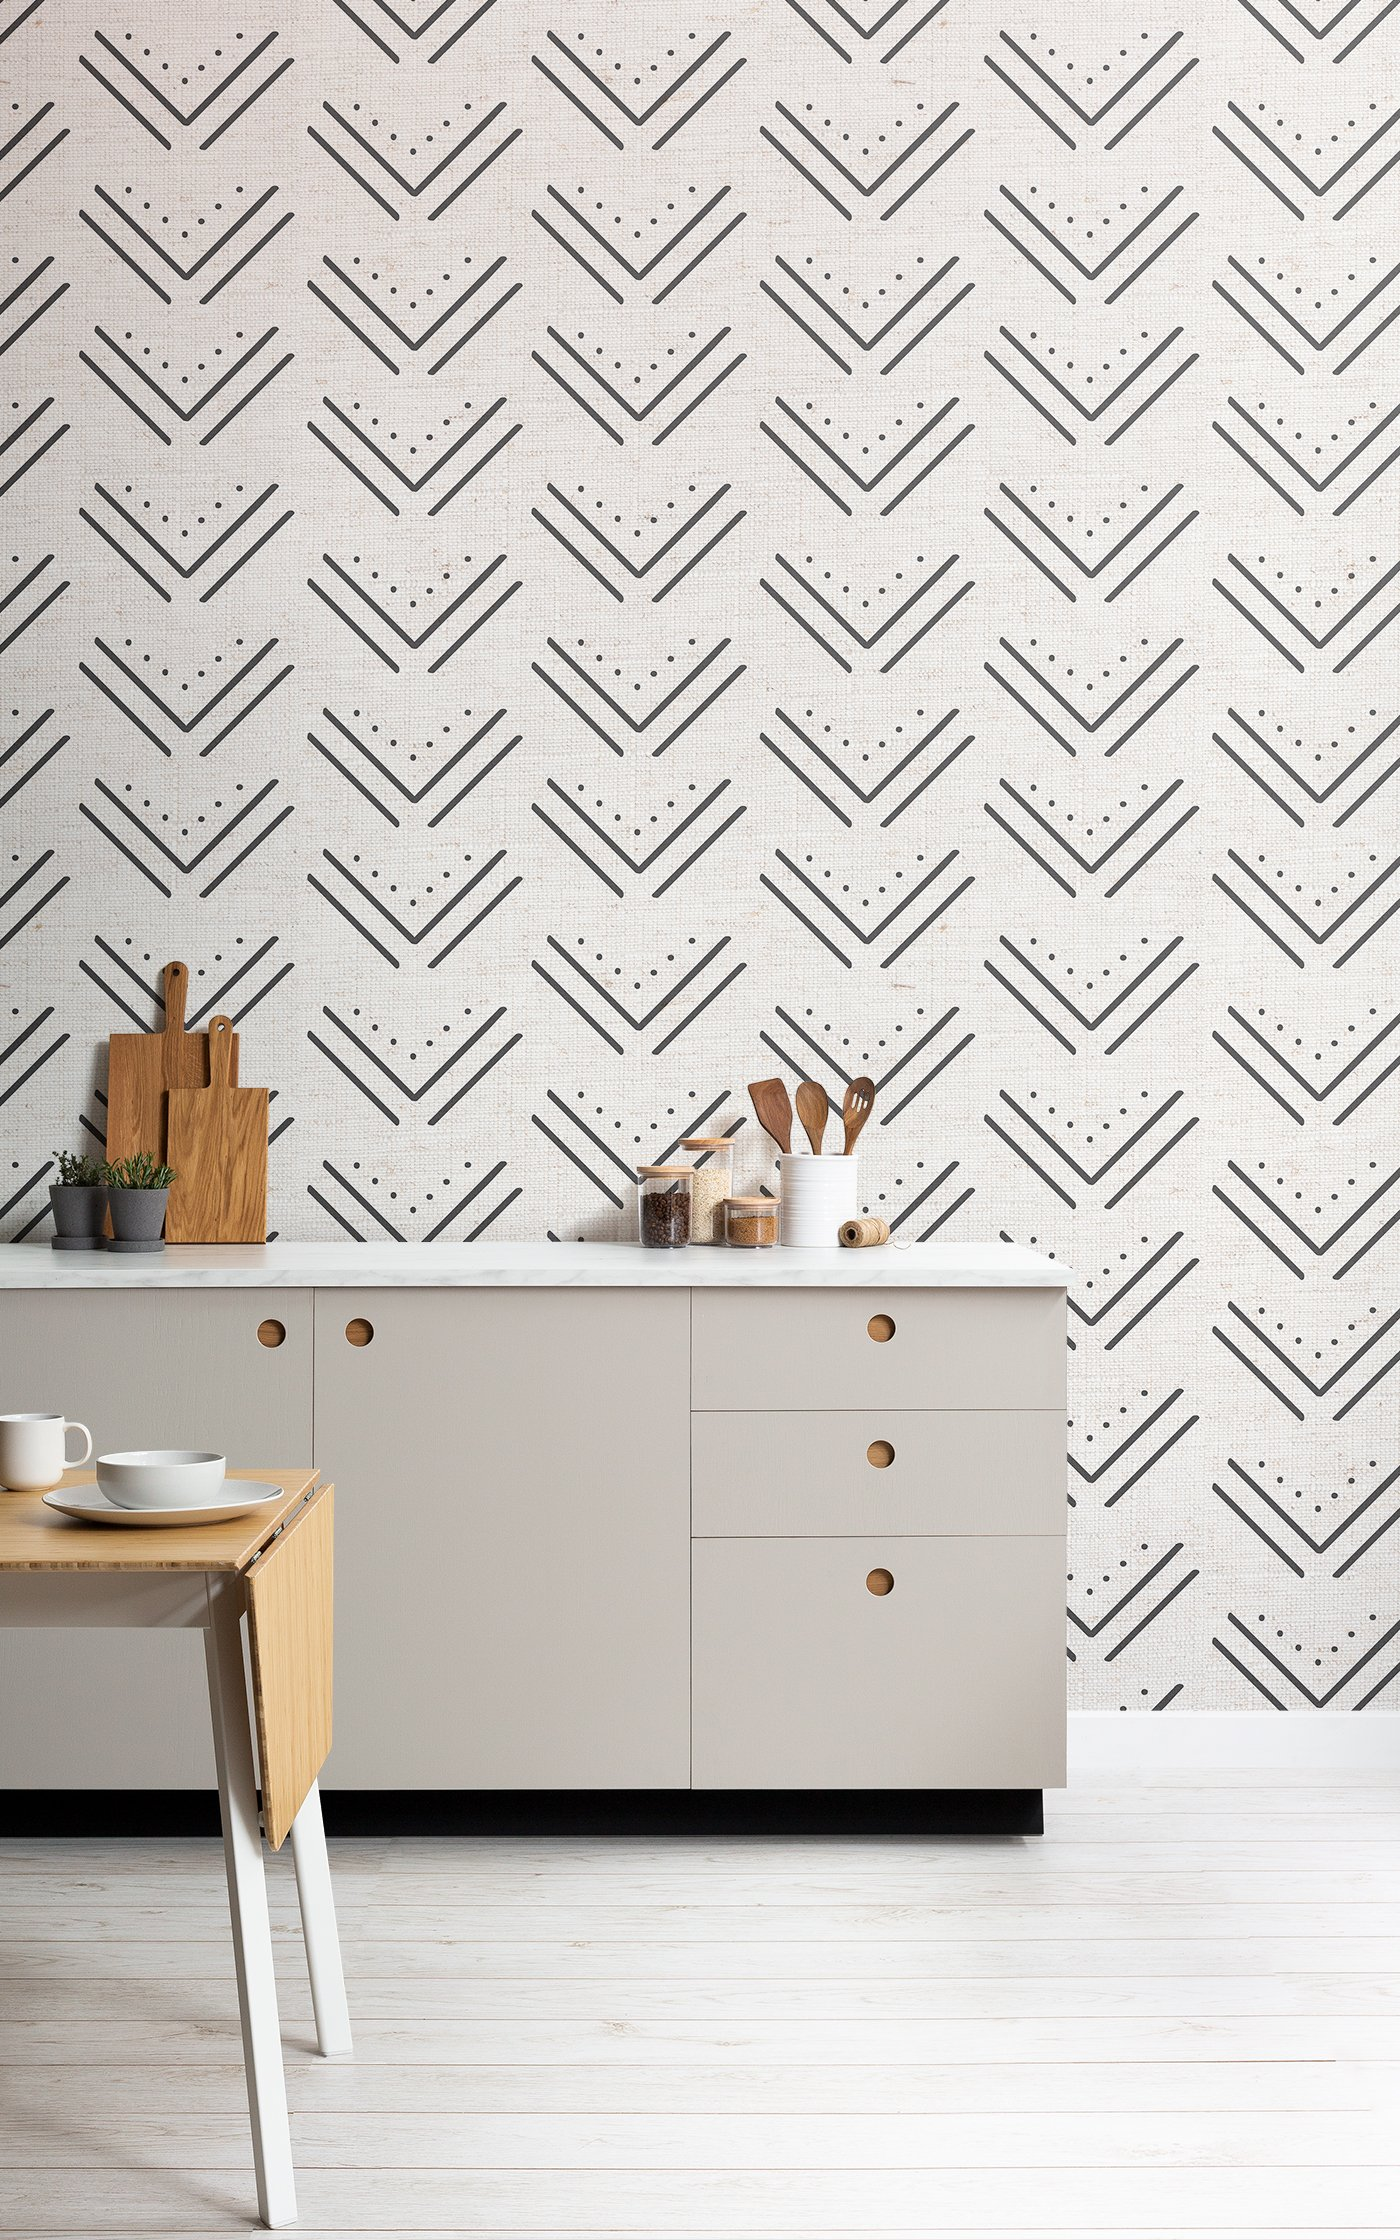 tribal arrowhead pattern wallpaper